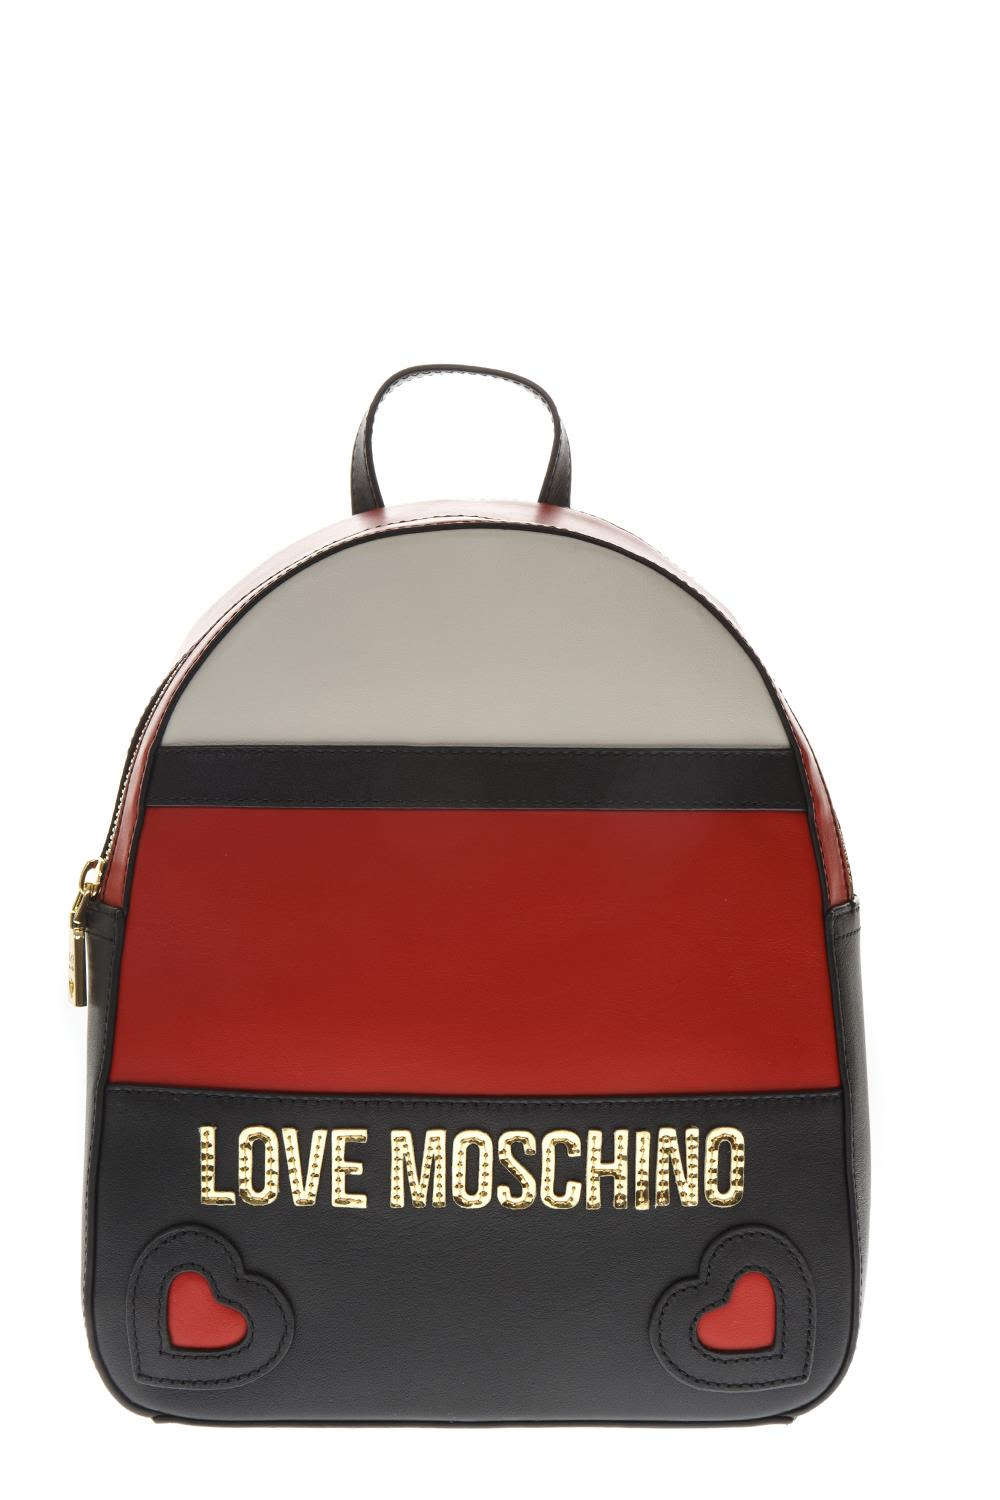 Love Moschino Multicolor Faux Leather Backpack